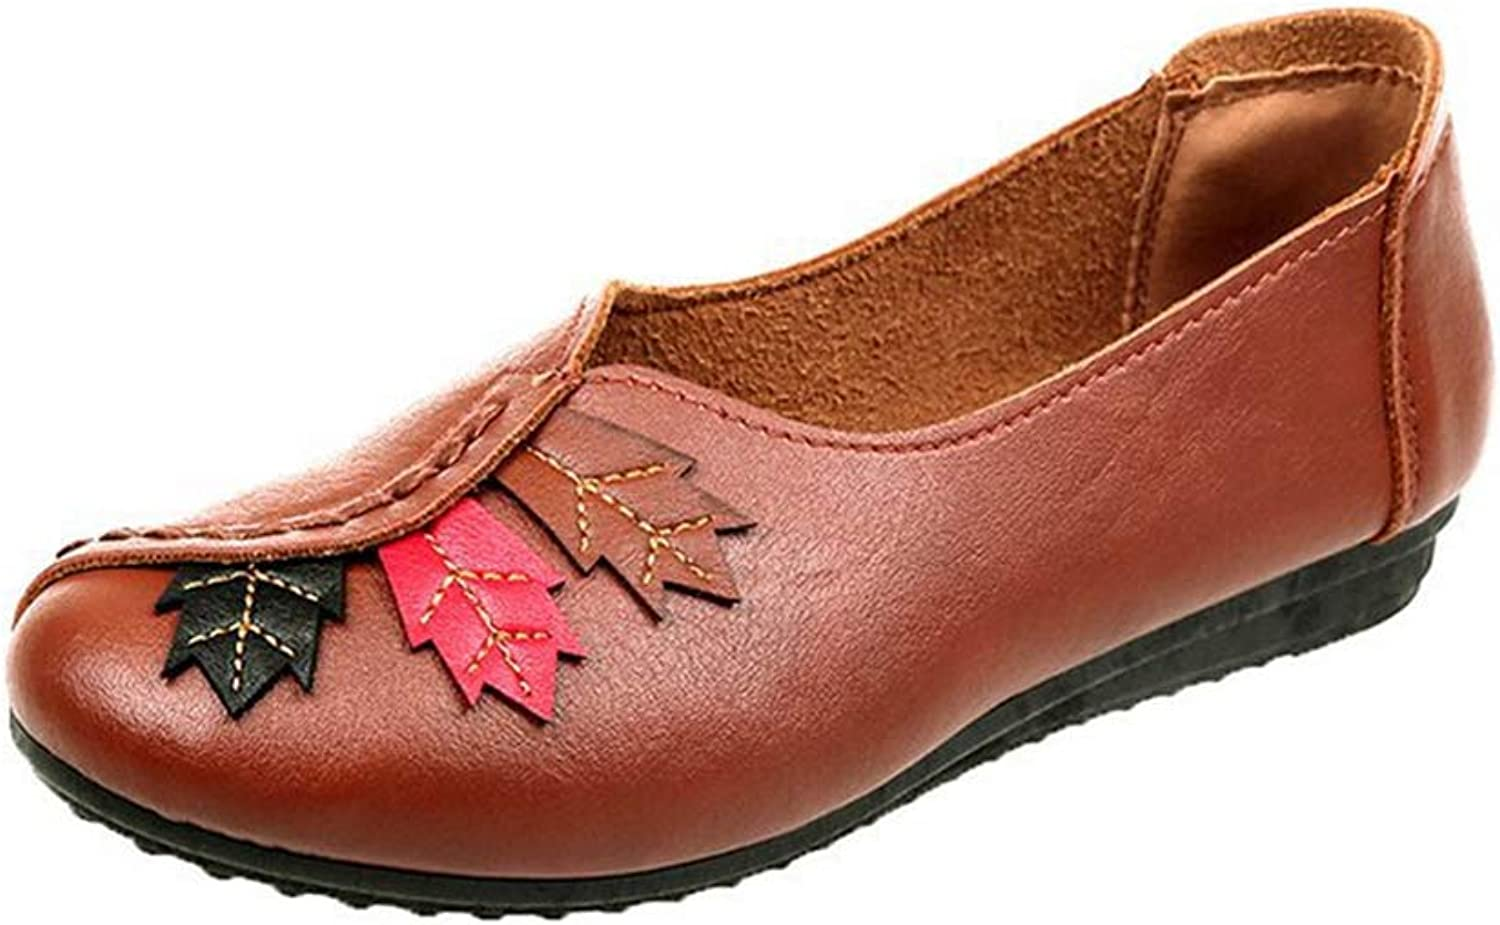 T-JULY Women Ballet Flats Slip on Loafers Moccasins Female Genuine Leather shoes Red Maple Leaf Casual Ladies shoes PU Footwear